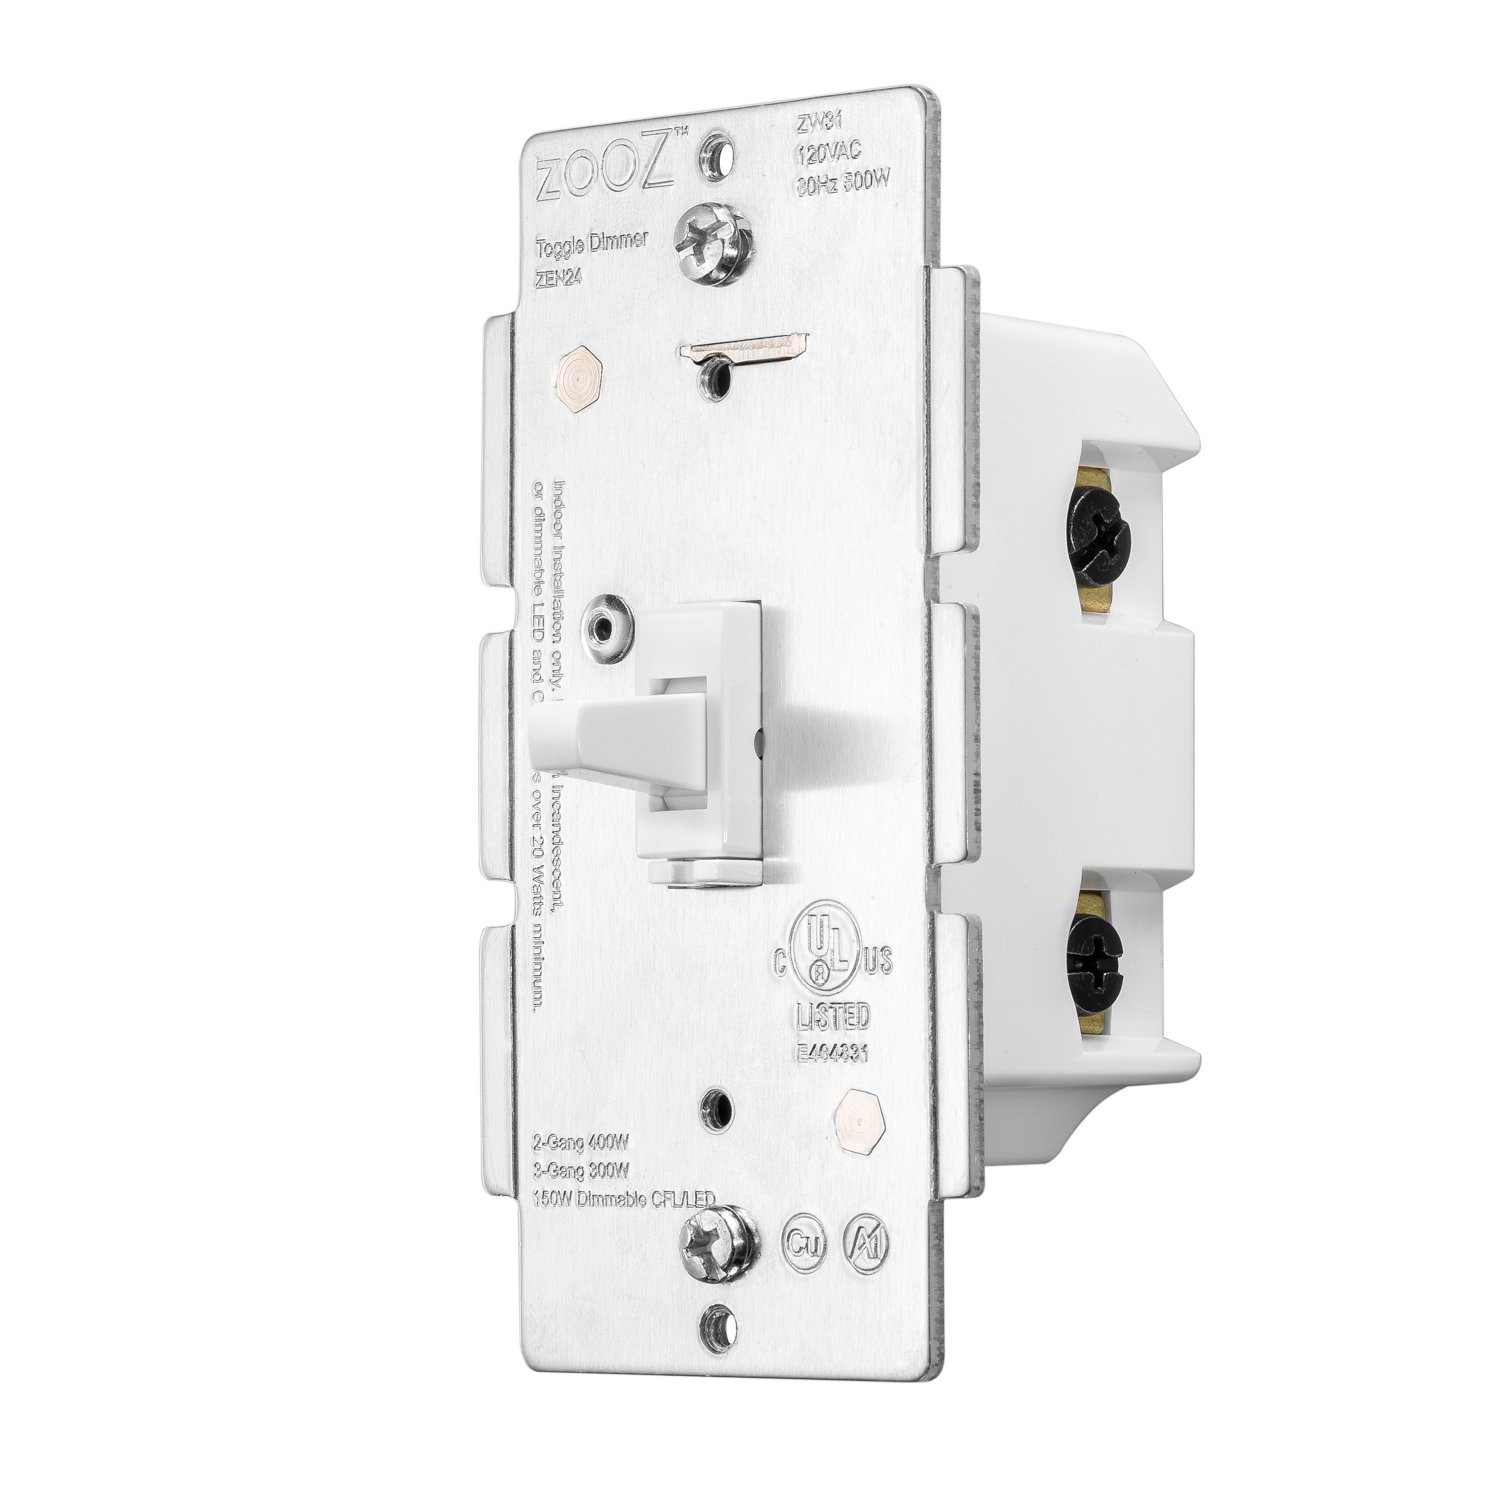 2 0 · Zooz Z Wave Plus Dimmer Toggle Switch ZEN24 VER